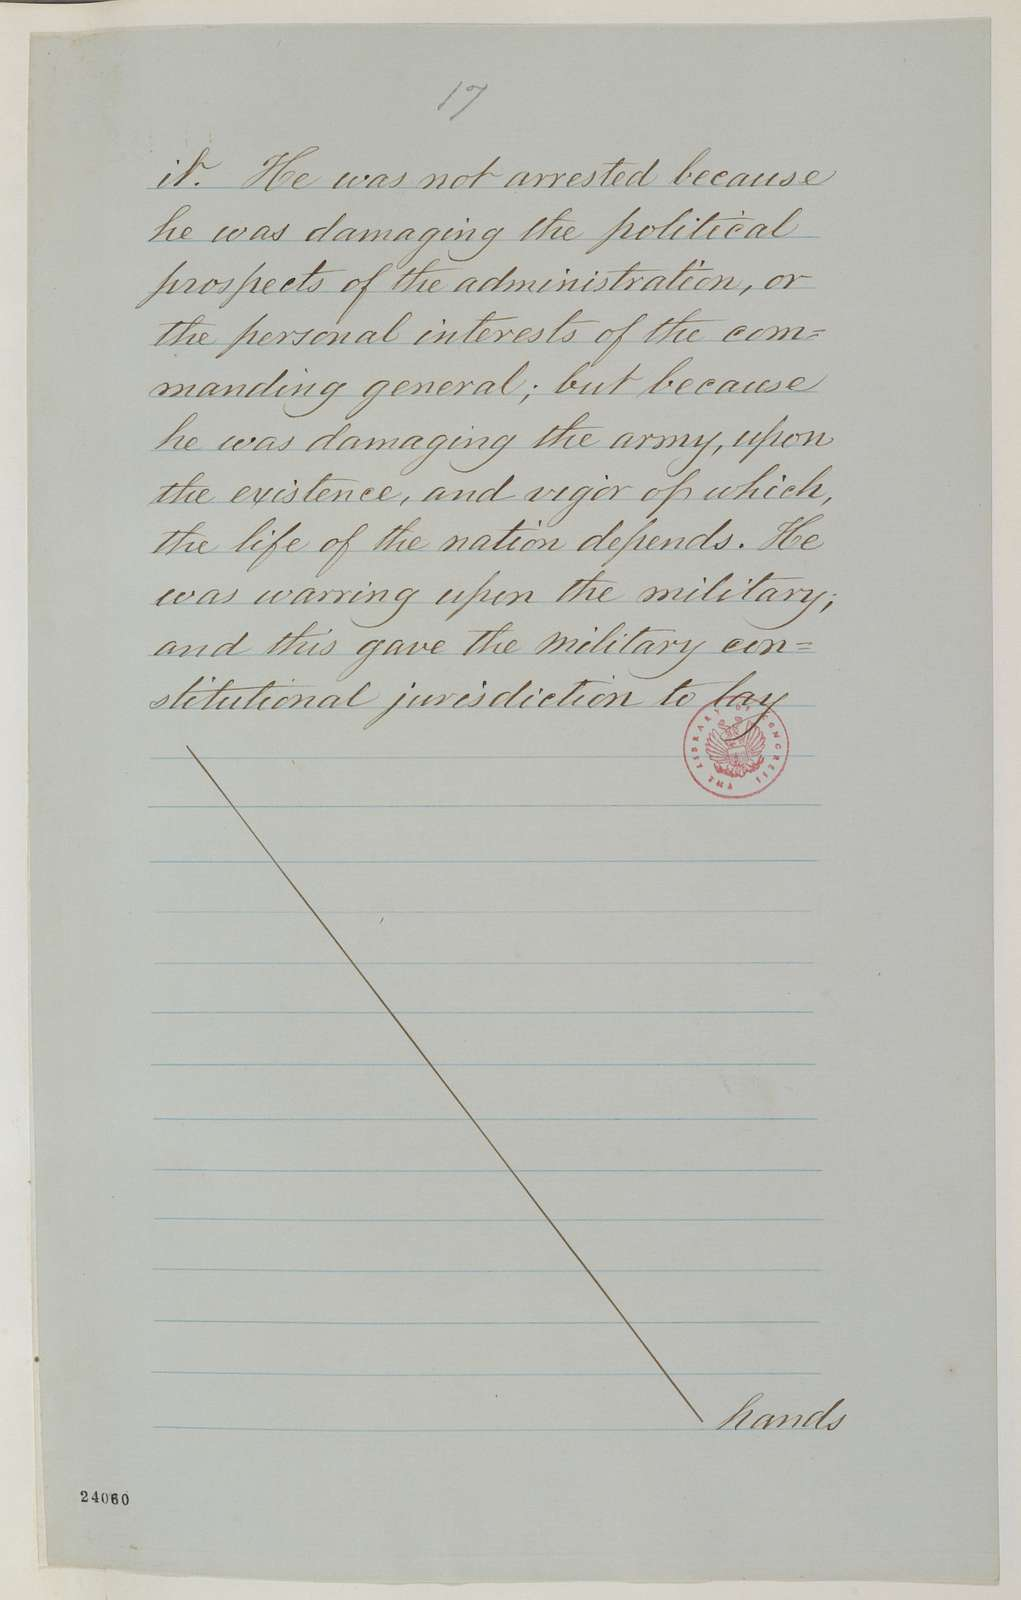 Abraham Lincoln papers: Series 1. General Correspondence. 1833-1916: Abraham Lincoln to Erastus Corning and Others, June 1863 (Copy No. 2 of Lincoln's reply to resolutions concerning military arrests and suspension of habeas corpus)